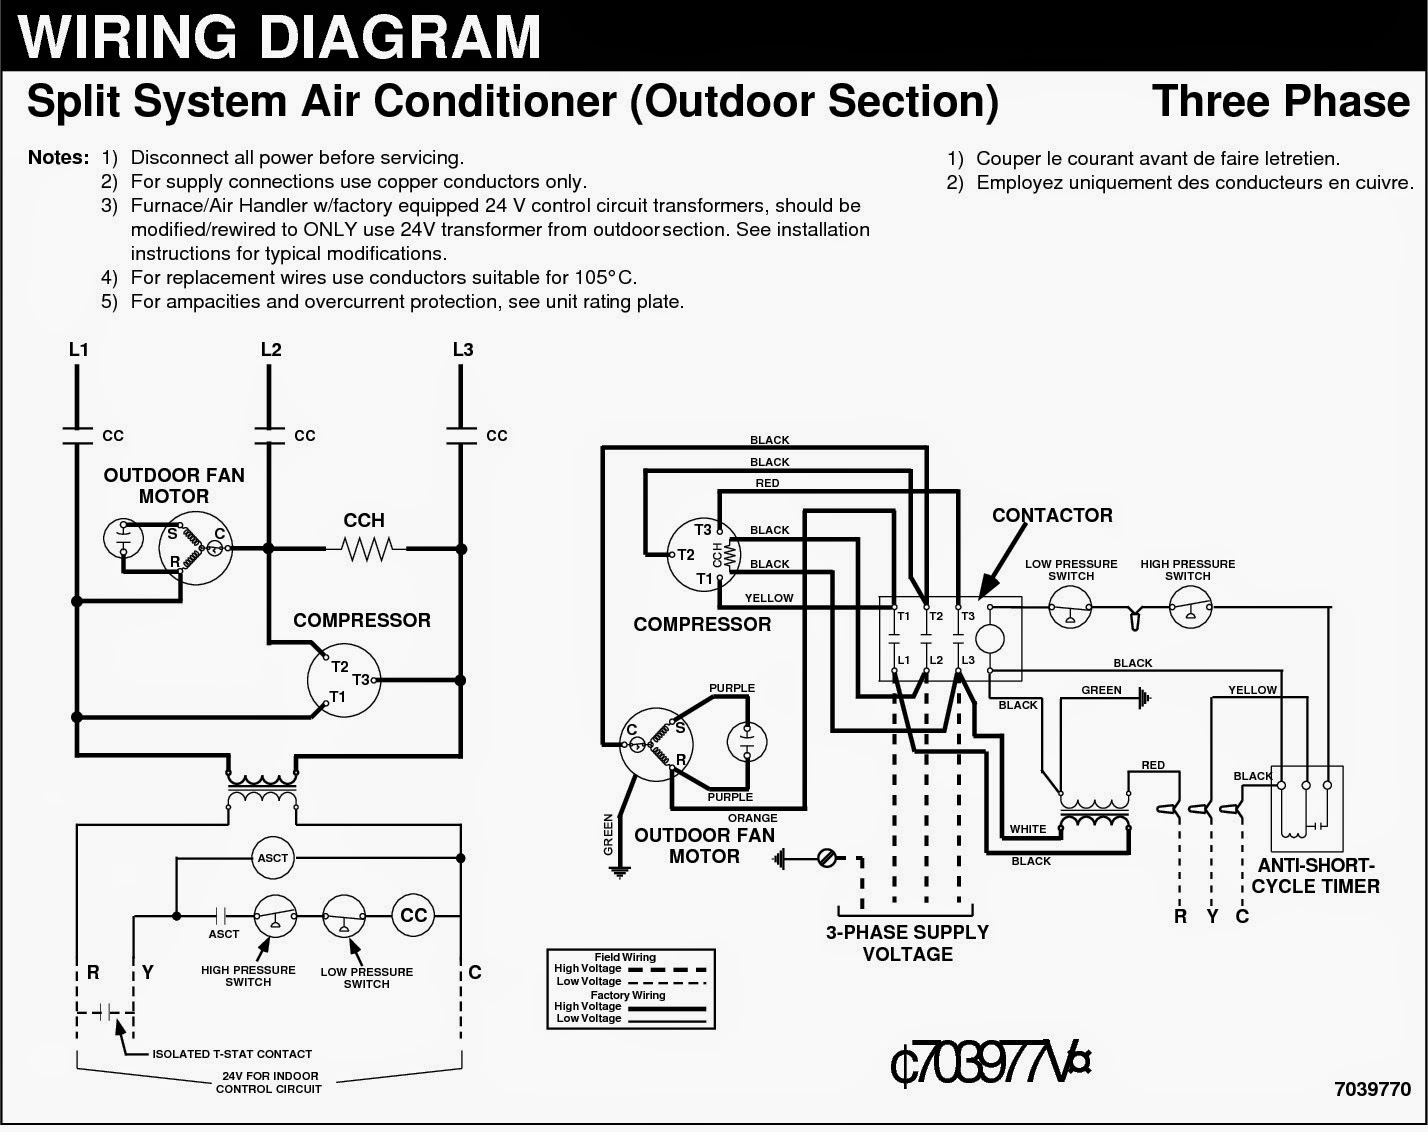 3+phase electrical wiring diagrams for air conditioning systems part two  at readyjetset.co